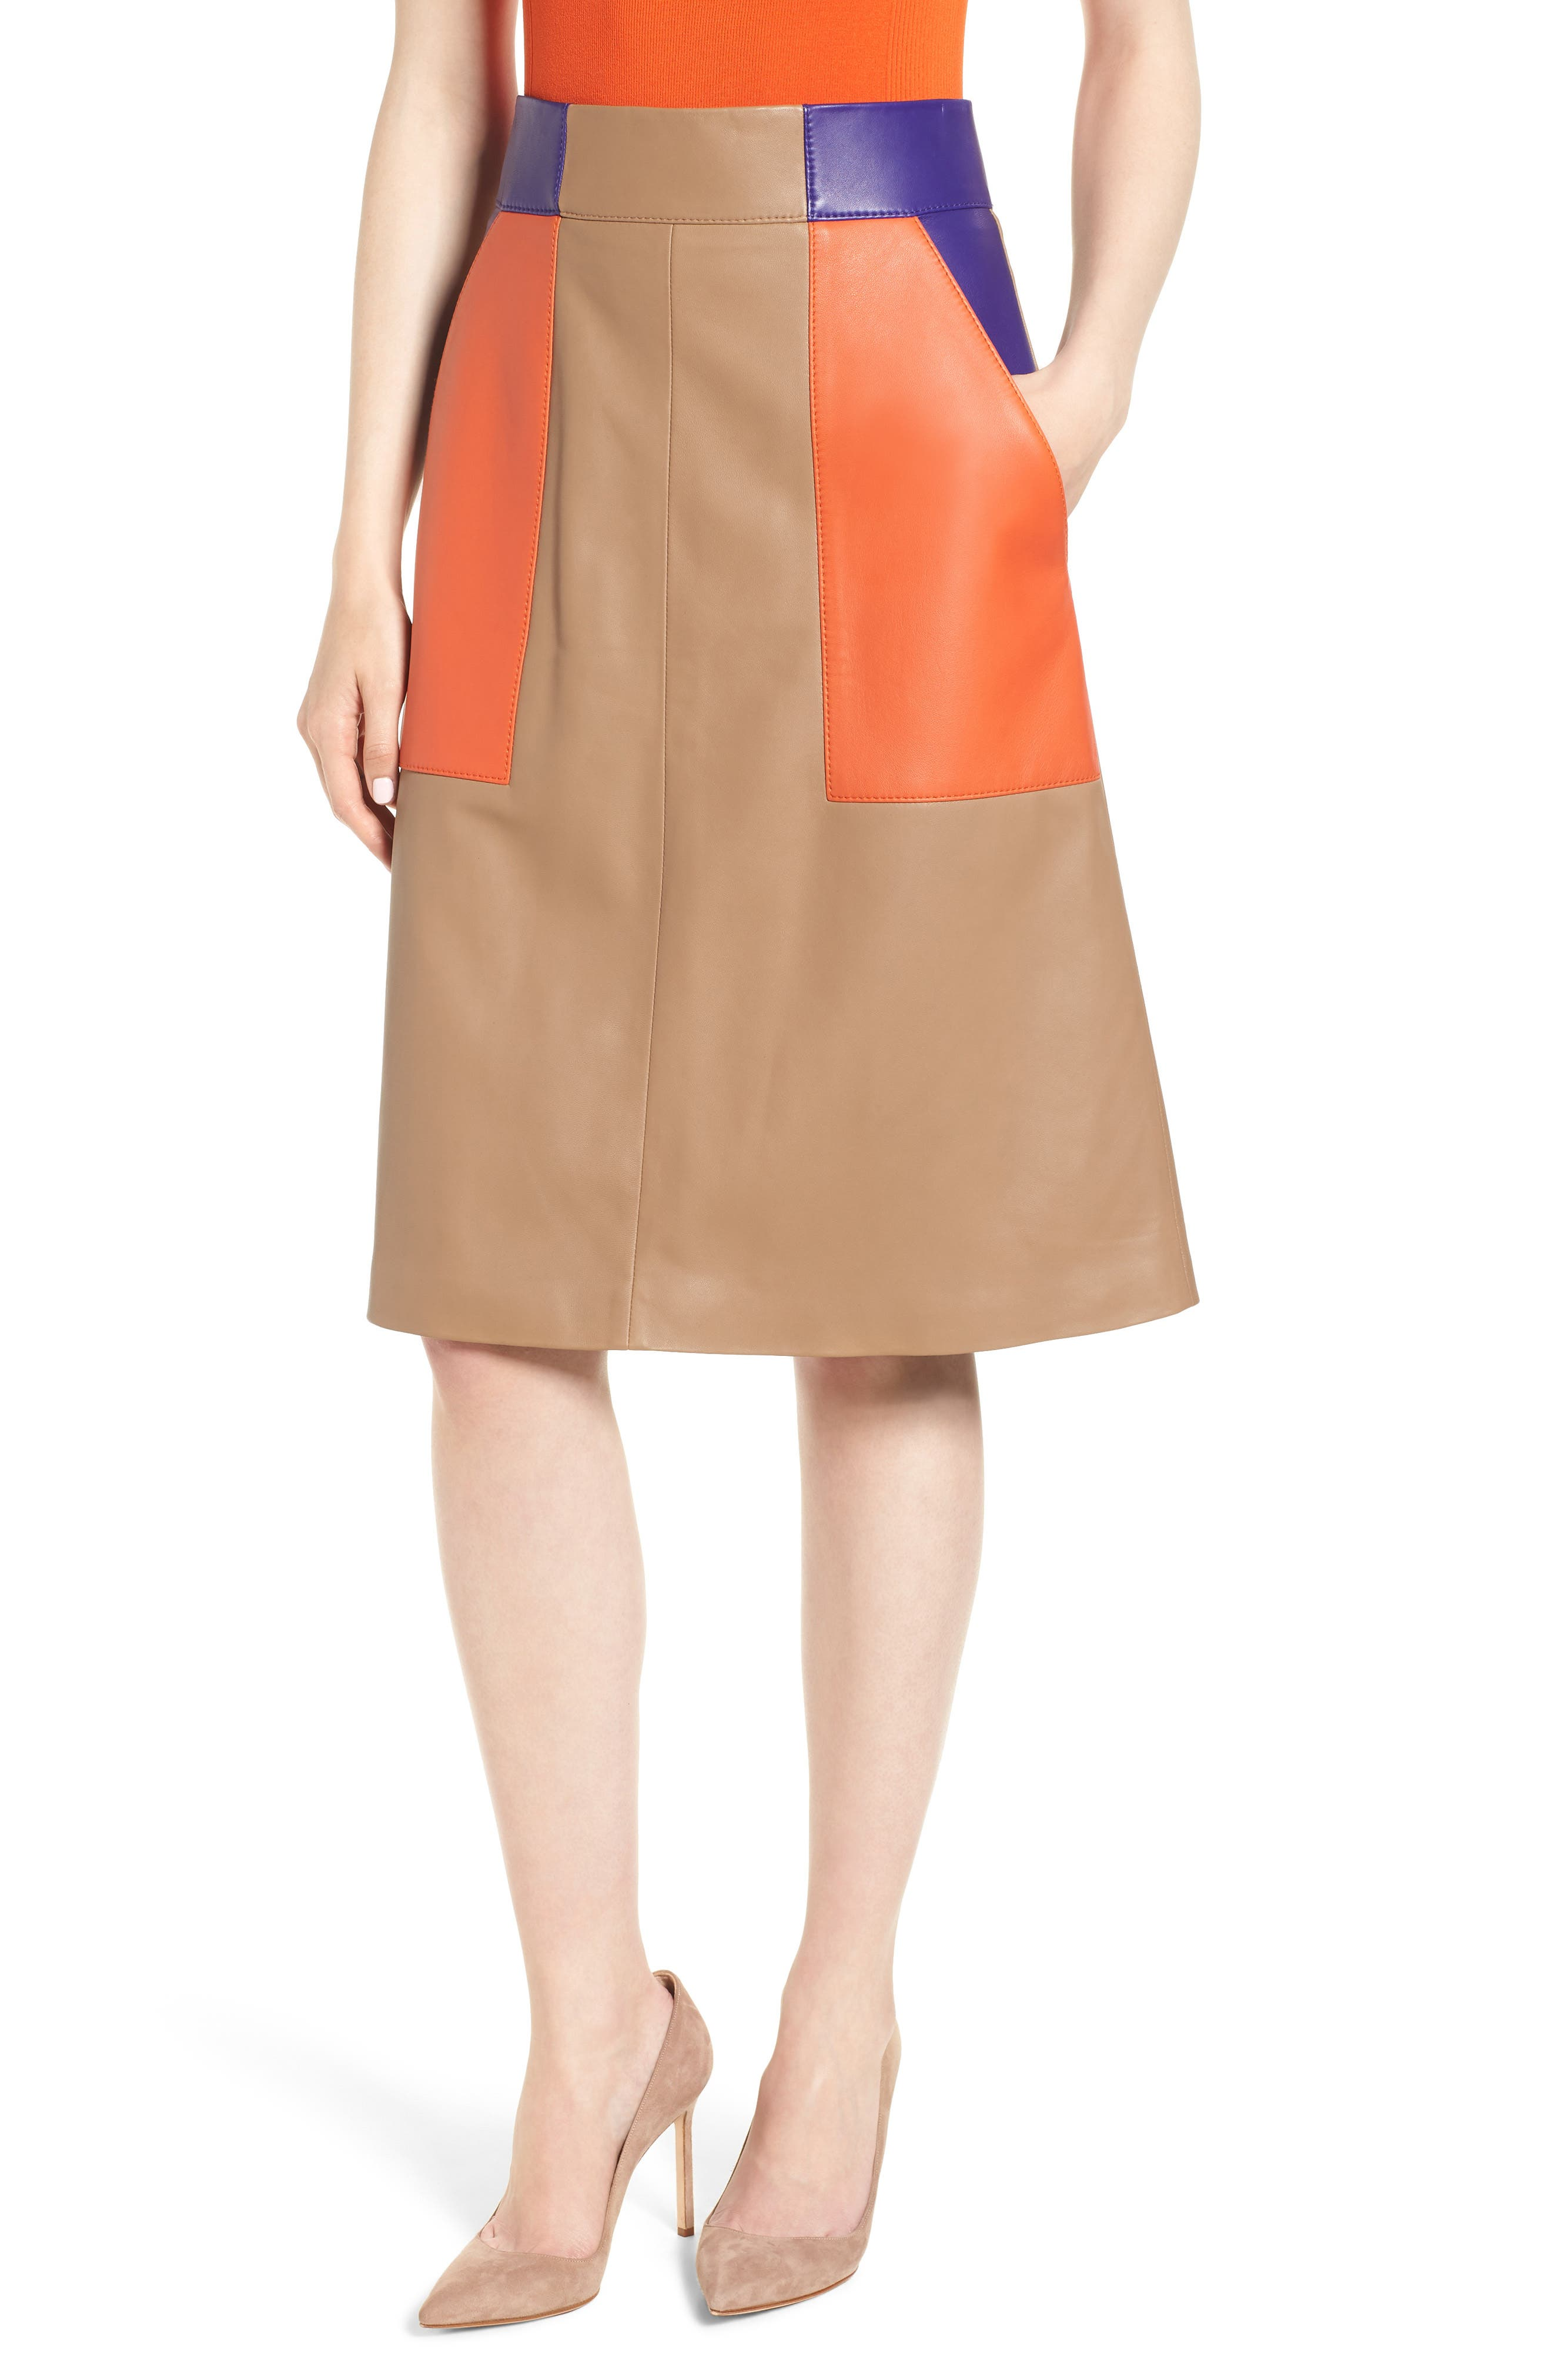 Seplea Colorblock Leather Skirt,                             Main thumbnail 1, color,                             264